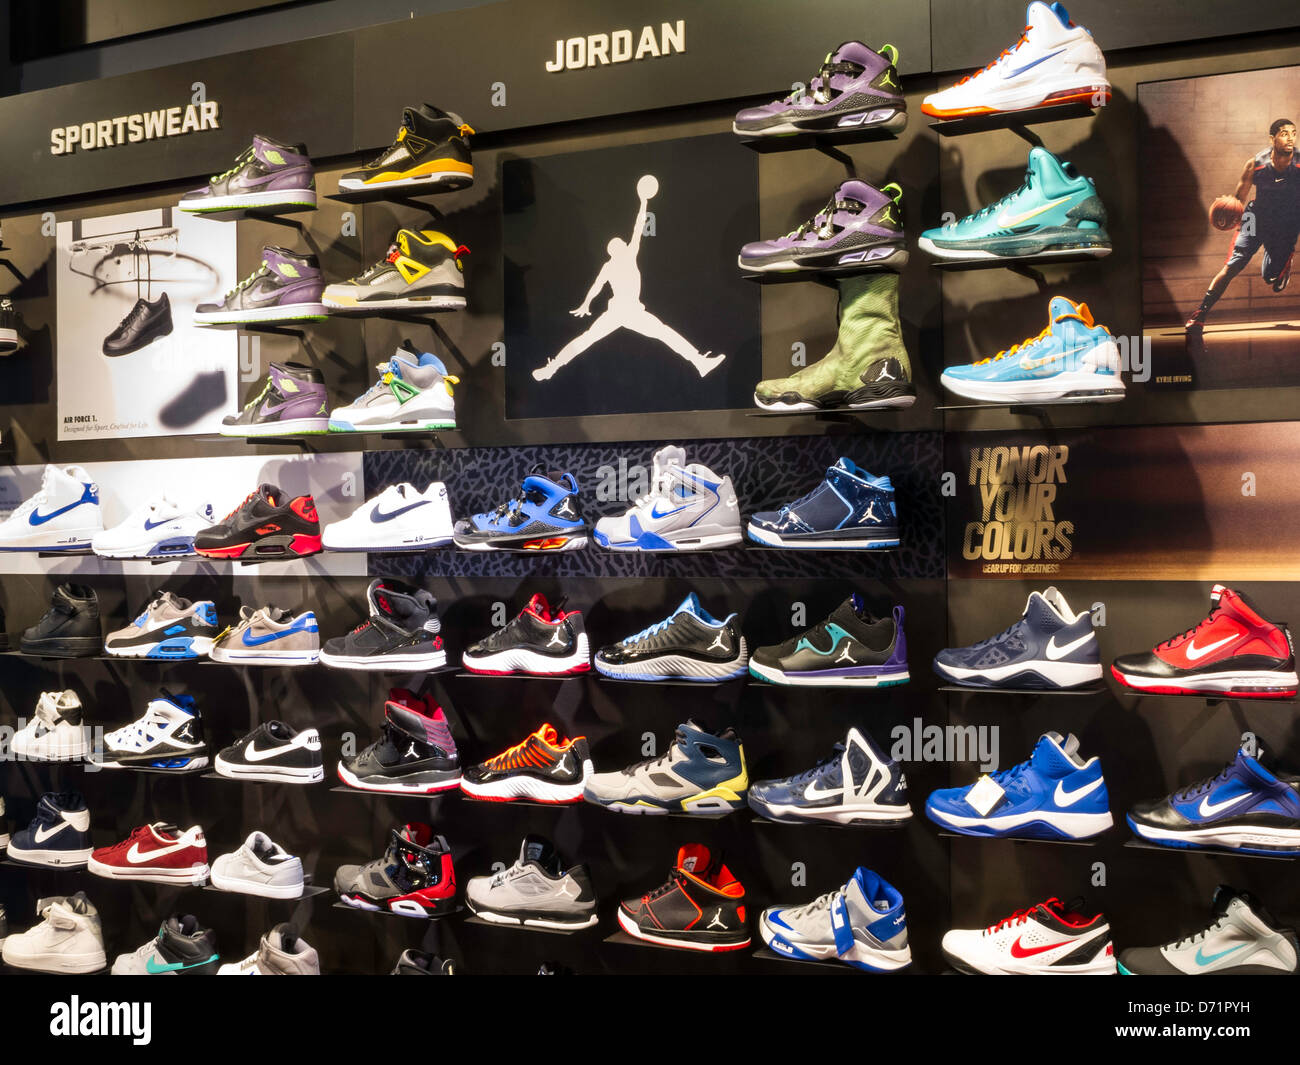 Athletic Footwear Wall, Modell's Sporting Goods Store ...